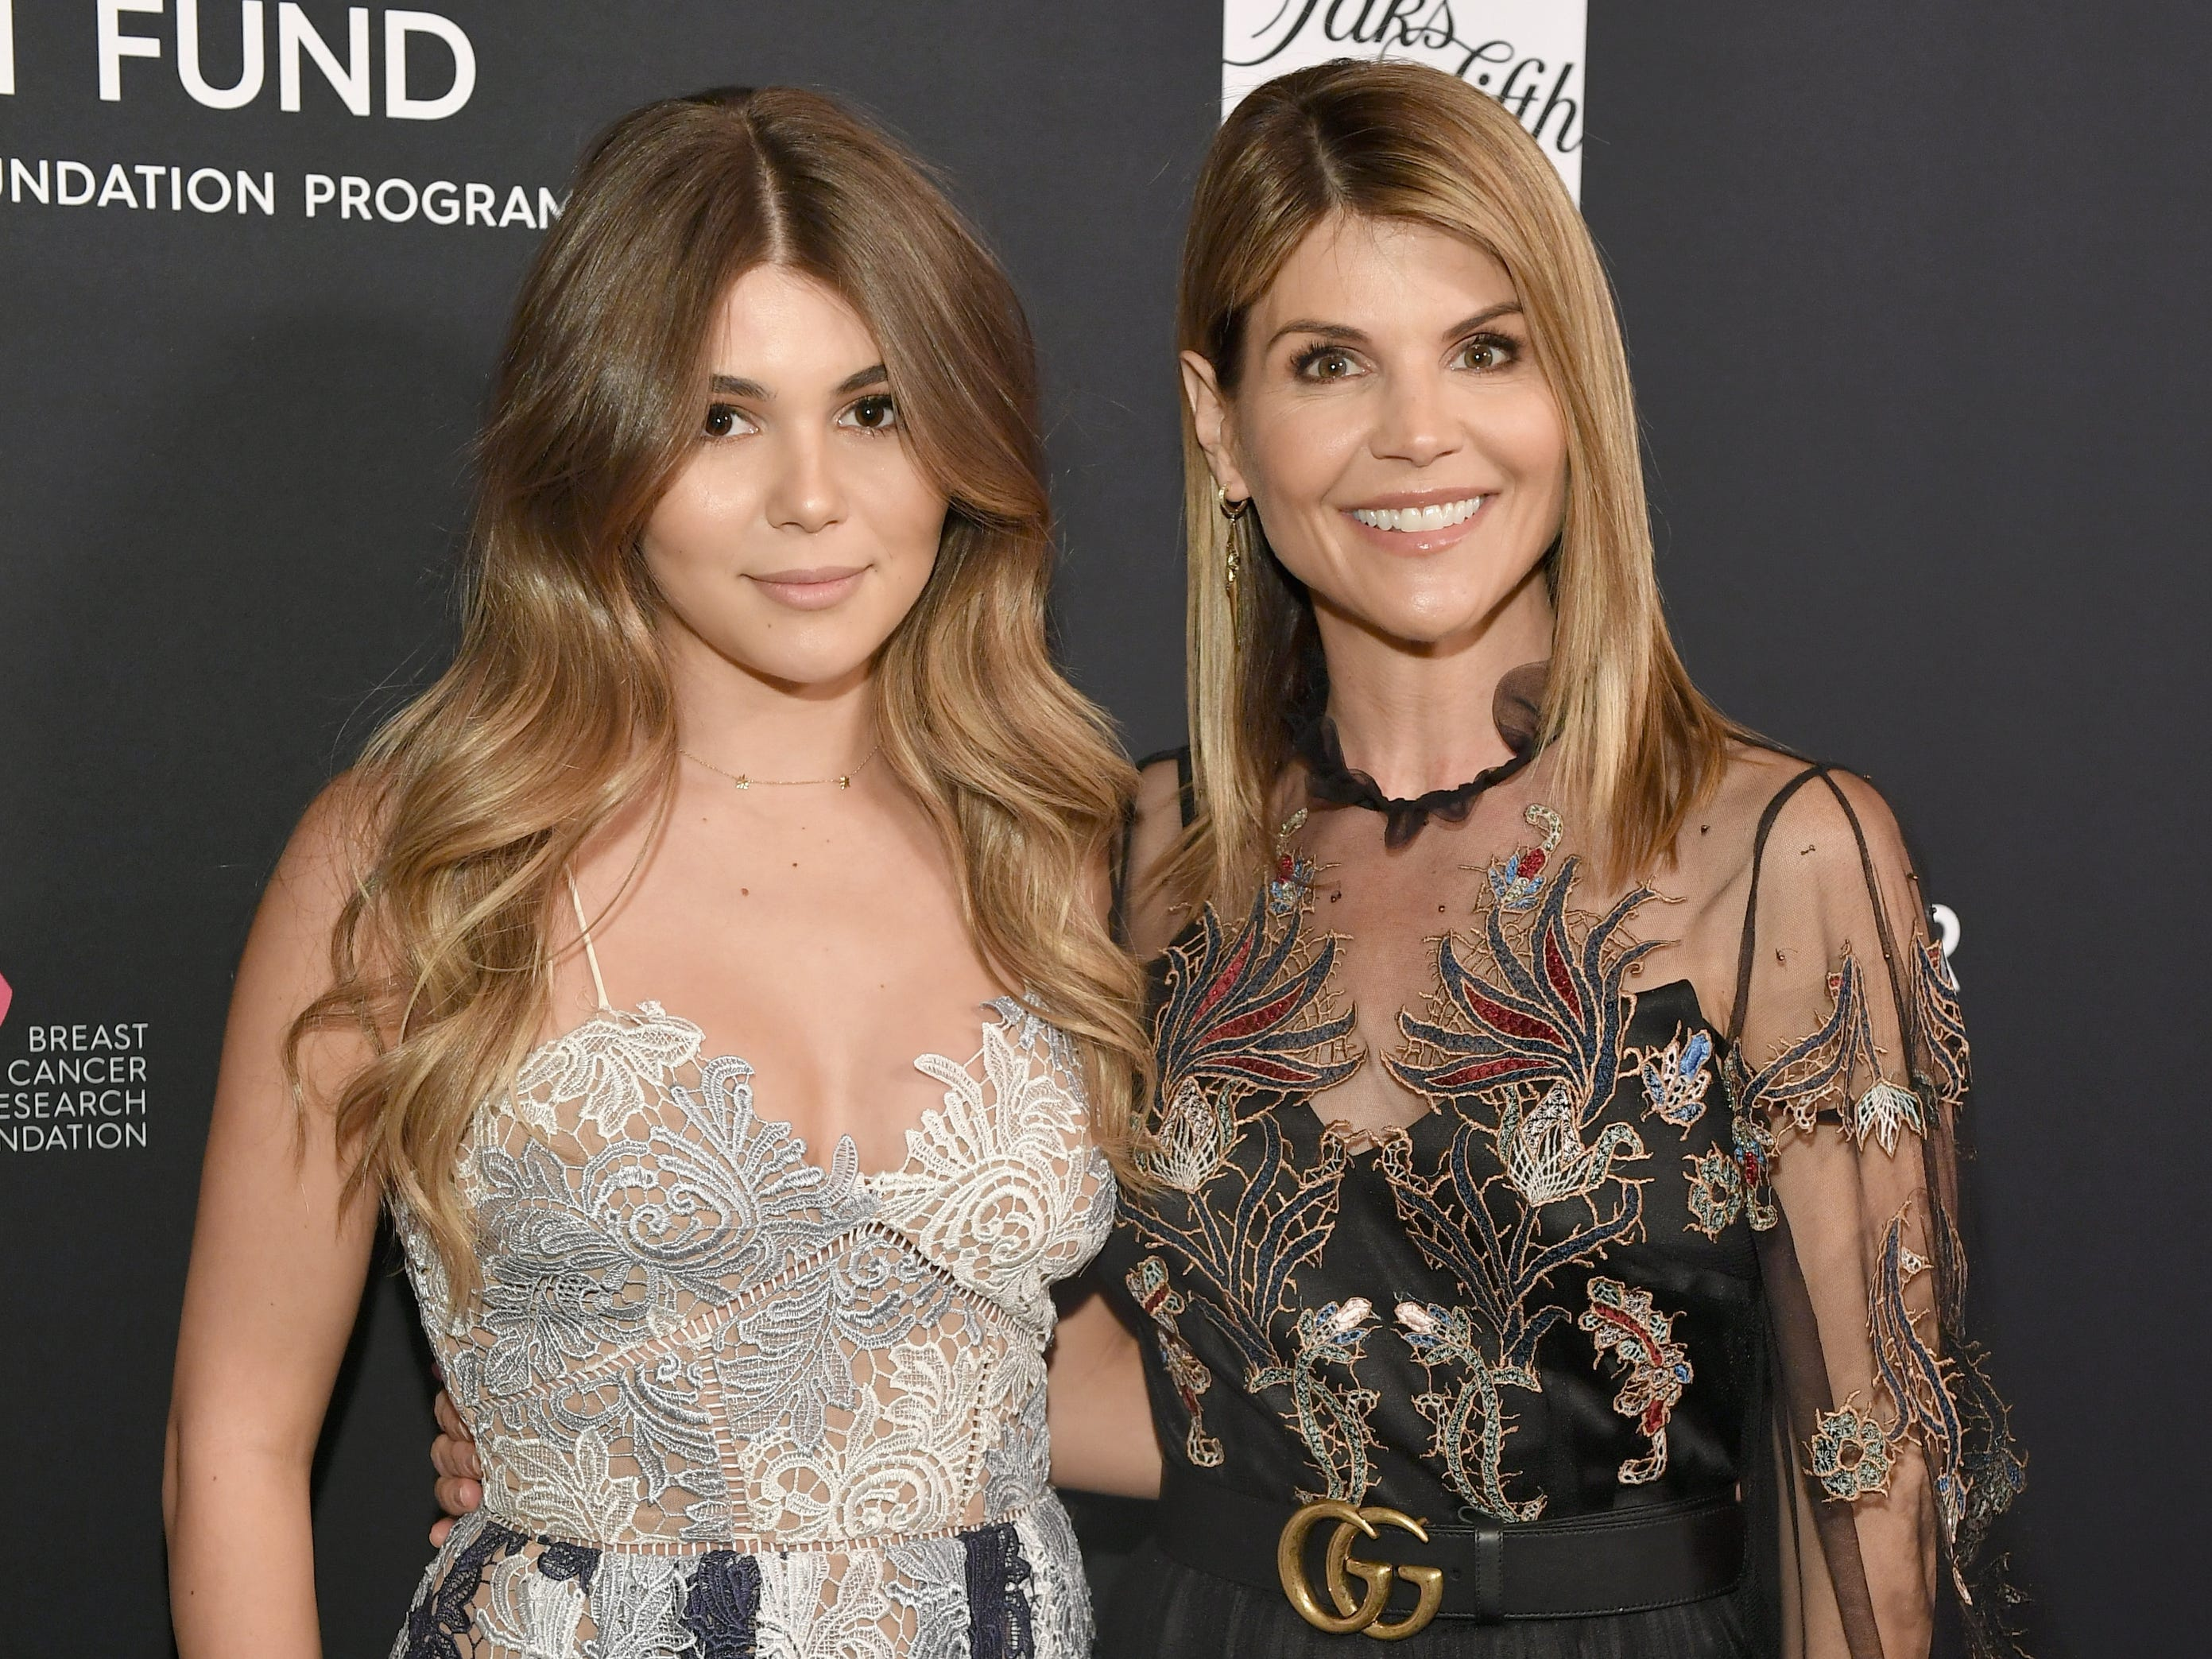 """Olivia Giannulli, left, and Lori Loughlin attend WCRF's """"An Unforgettable Evening"""" Presented by Saks Fifth Avenue on Feb. 27, 2018, in Beverly Hills, Calif."""